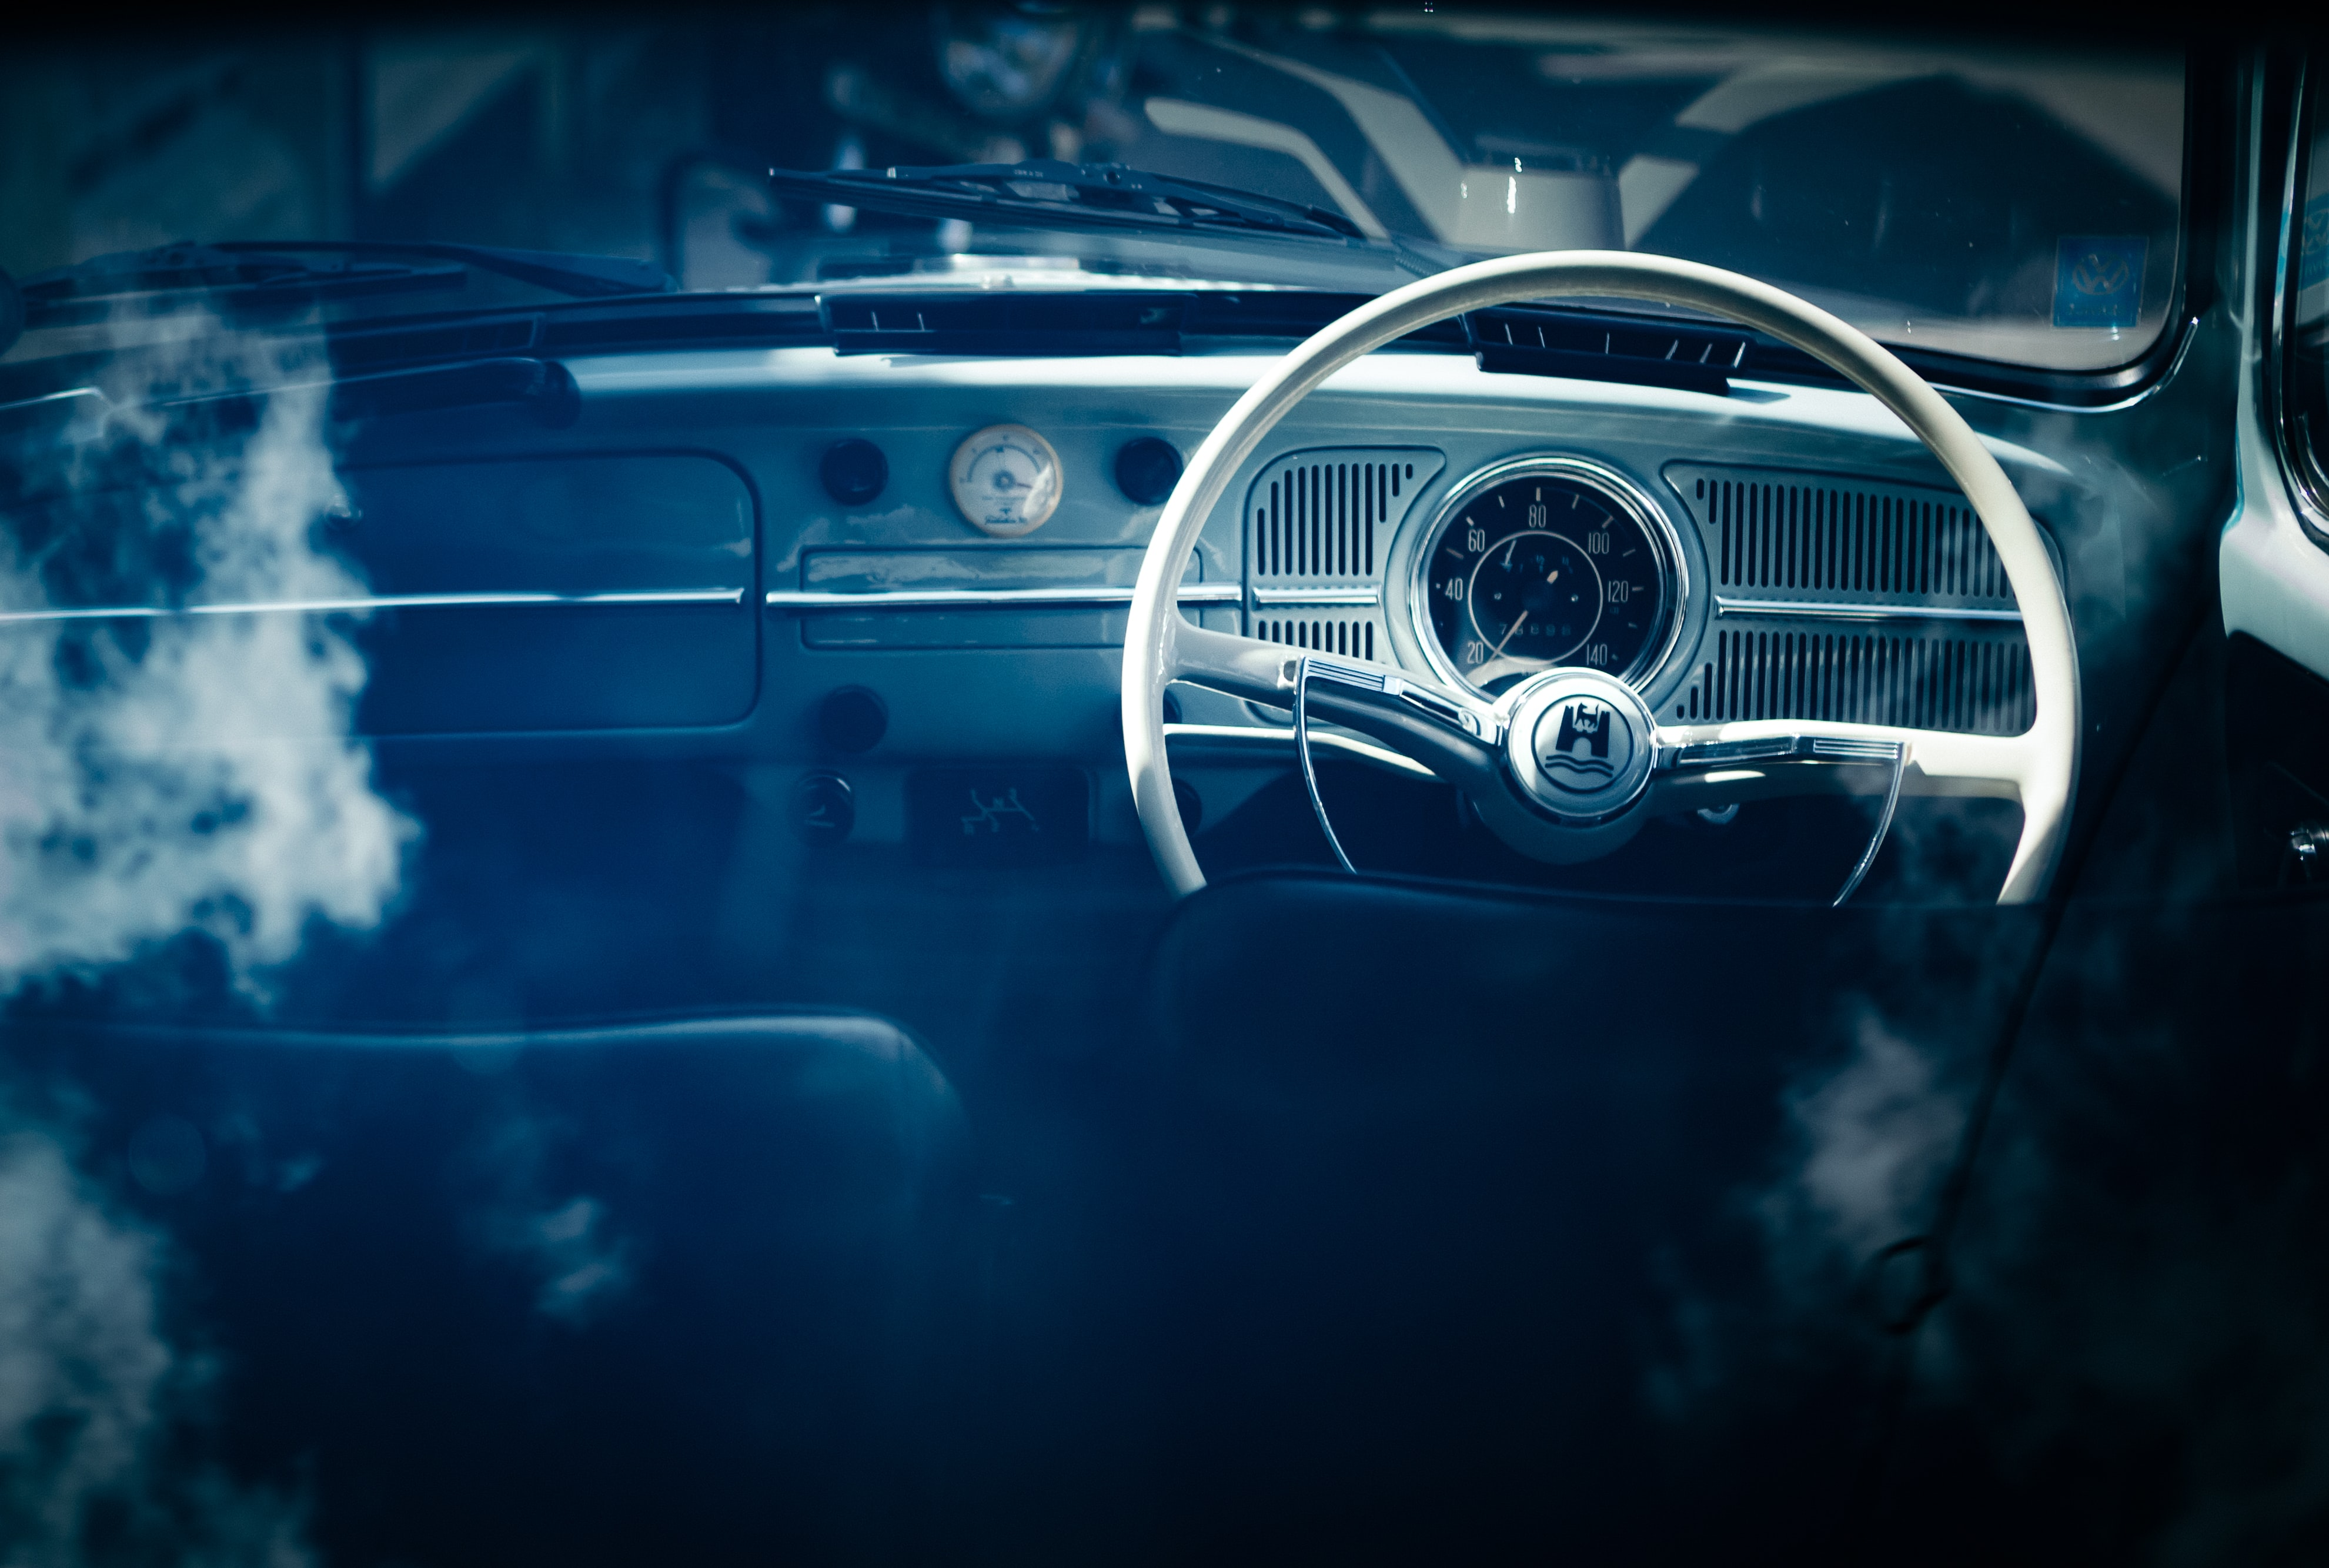 photo of gray car steering wheel